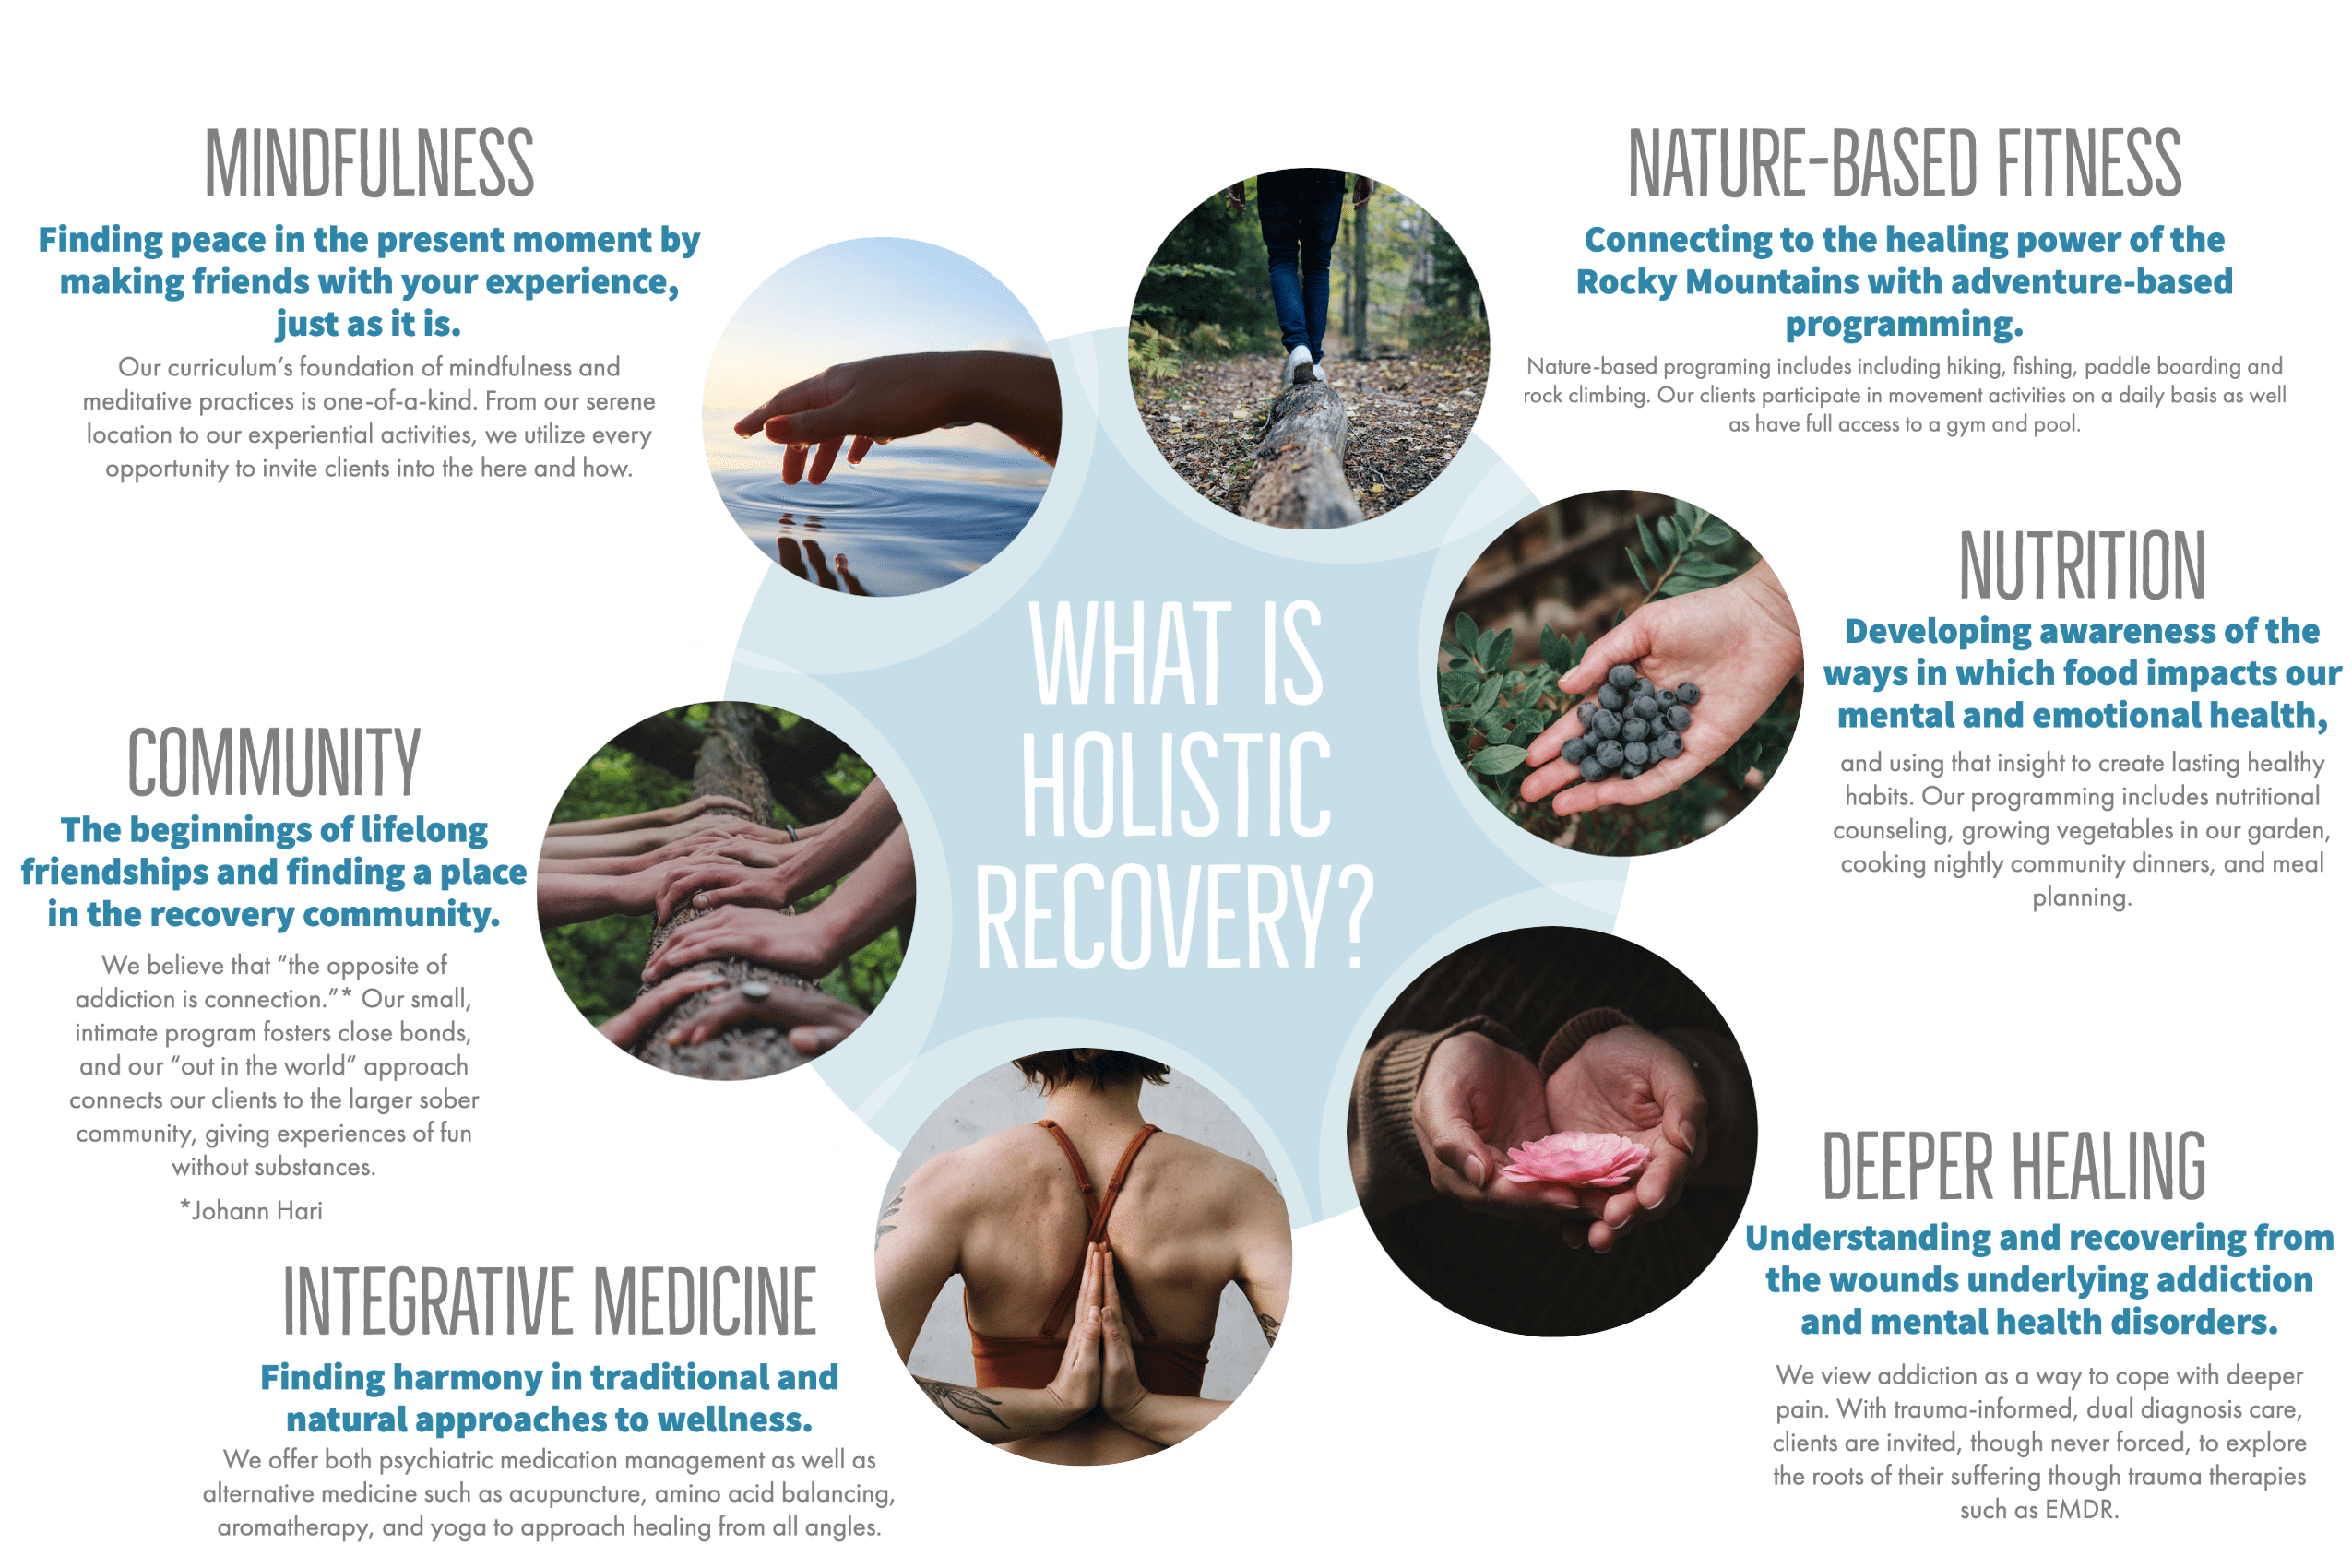 What is holistic recovery